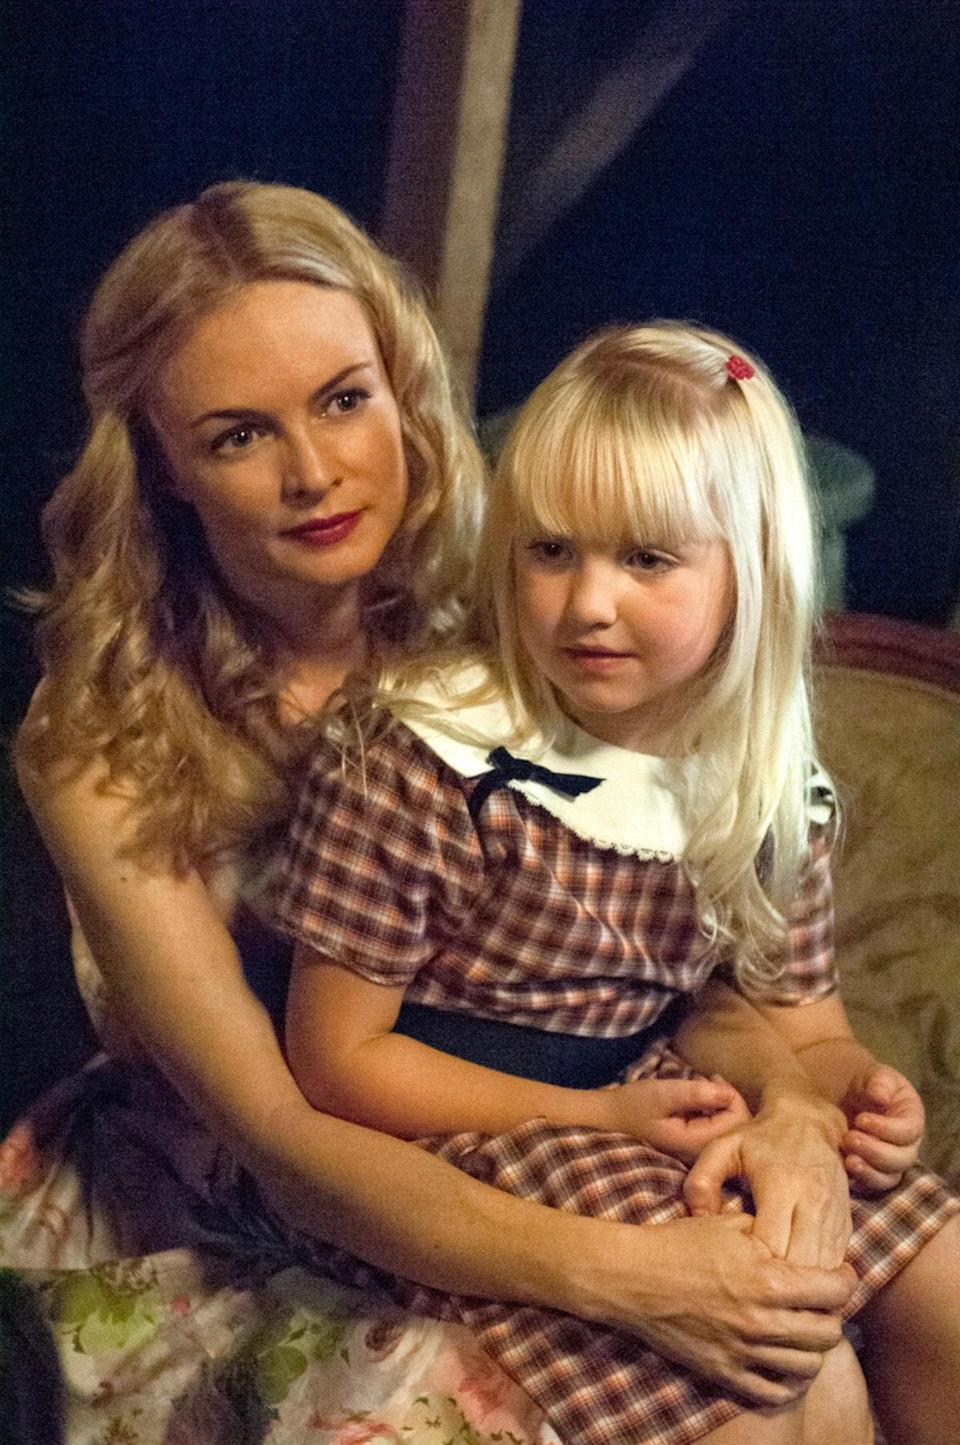 """<p>You know this (very messed up) story quite well, I'm sure. Four children are locked in an attic while their mother parties and searches for a new wealthy husband, and their health deteriorates as the years go by (among other issues). Heather Graham stars the mom, Corrine, while Ellen Burstyn plays <em>her</em> mother: the cold, callous Olivia Foxworth. </p> <p><a href=""""https://www.amazon.com/Flowers-Attic-Cue-Dog-Productions/dp/B00HXT5T7K/ref=sr_1_1?dchild=1&keywords=Flowers+in+the+Attic+lifetime&qid=1595443444&sr=8-1"""" rel=""""nofollow noopener"""" target=""""_blank"""" data-ylk=""""slk:Stream on Amazon Prime Video"""" class=""""link rapid-noclick-resp""""><em>Stream on Amazon Prime Video</em></a></p>"""